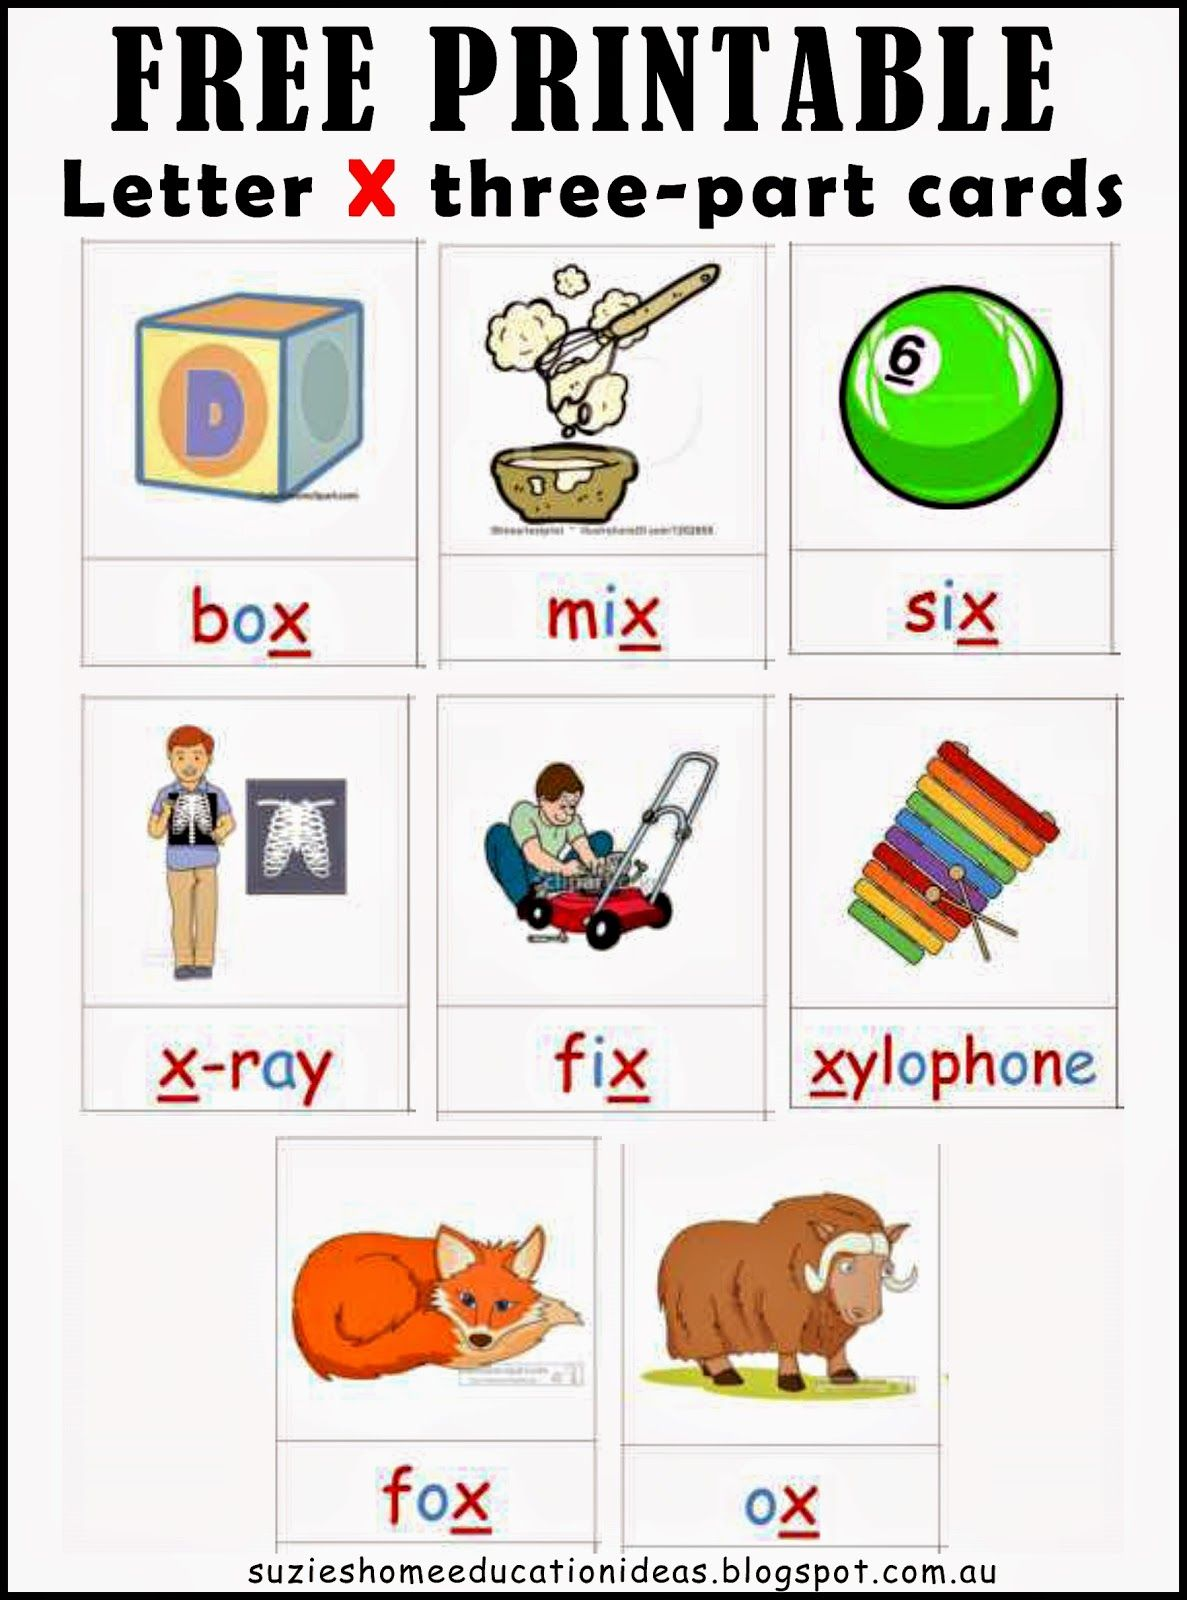 3 letter words with x letter x printable cards and activity ideas classroom 20084 | 340afb86d57cc822bb4d040b5e8ff8be